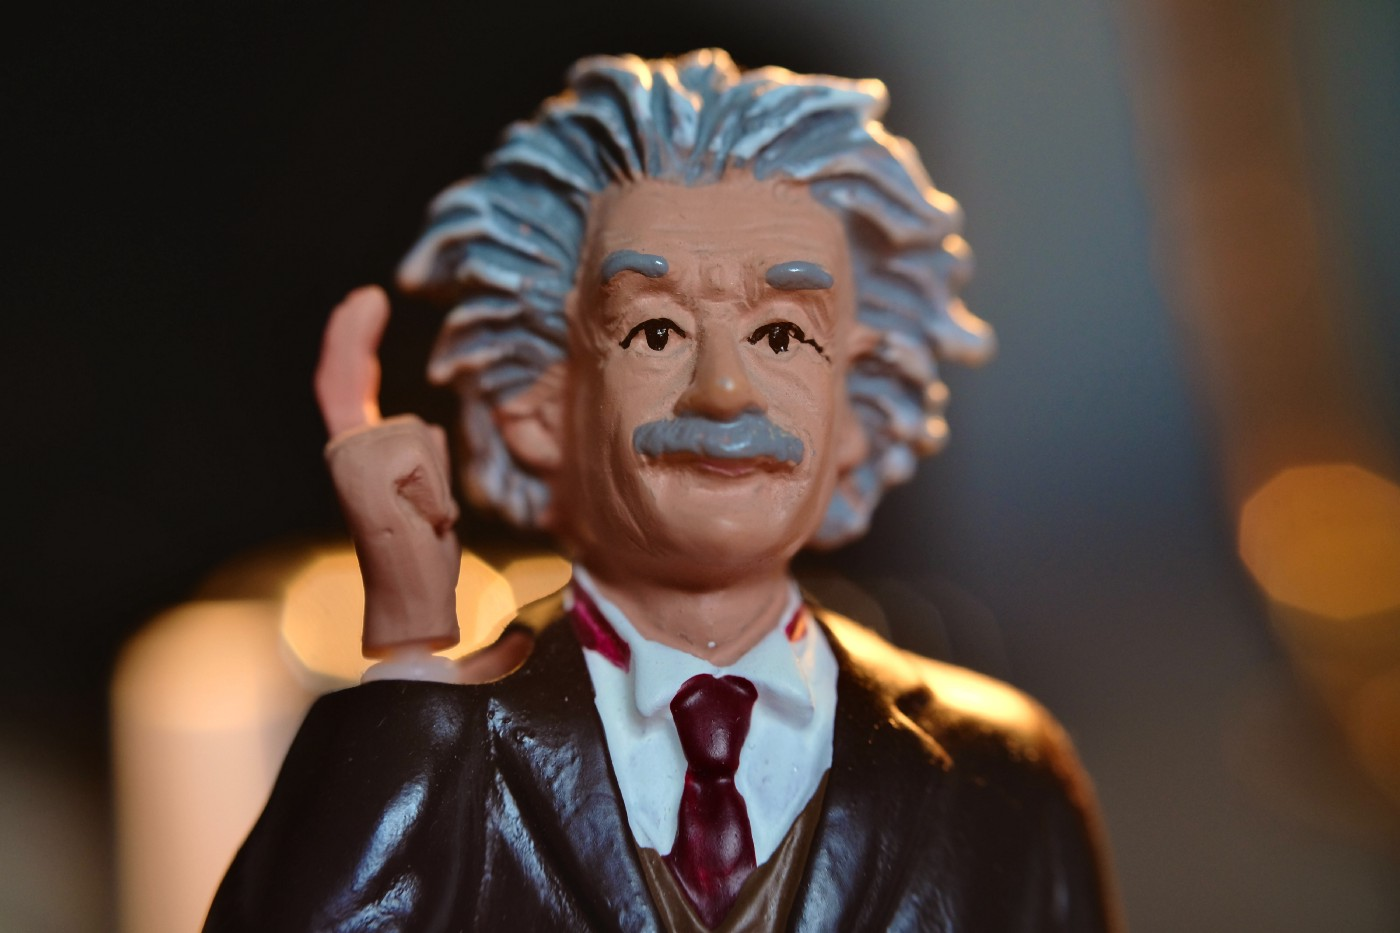 A close-up of a realistically painted model of renowned scientist, Albert Einstein, wearing a smart dark brown blazer, white shirt nd red tie. The model is posing with its right arm raised and index finger pointed towards the sky, as if having a Eureka moment. The models facial expression looks collected and confident, wearing a slight smile as it looks into the distance. The background is blurred but there are a few lights distinguishable.